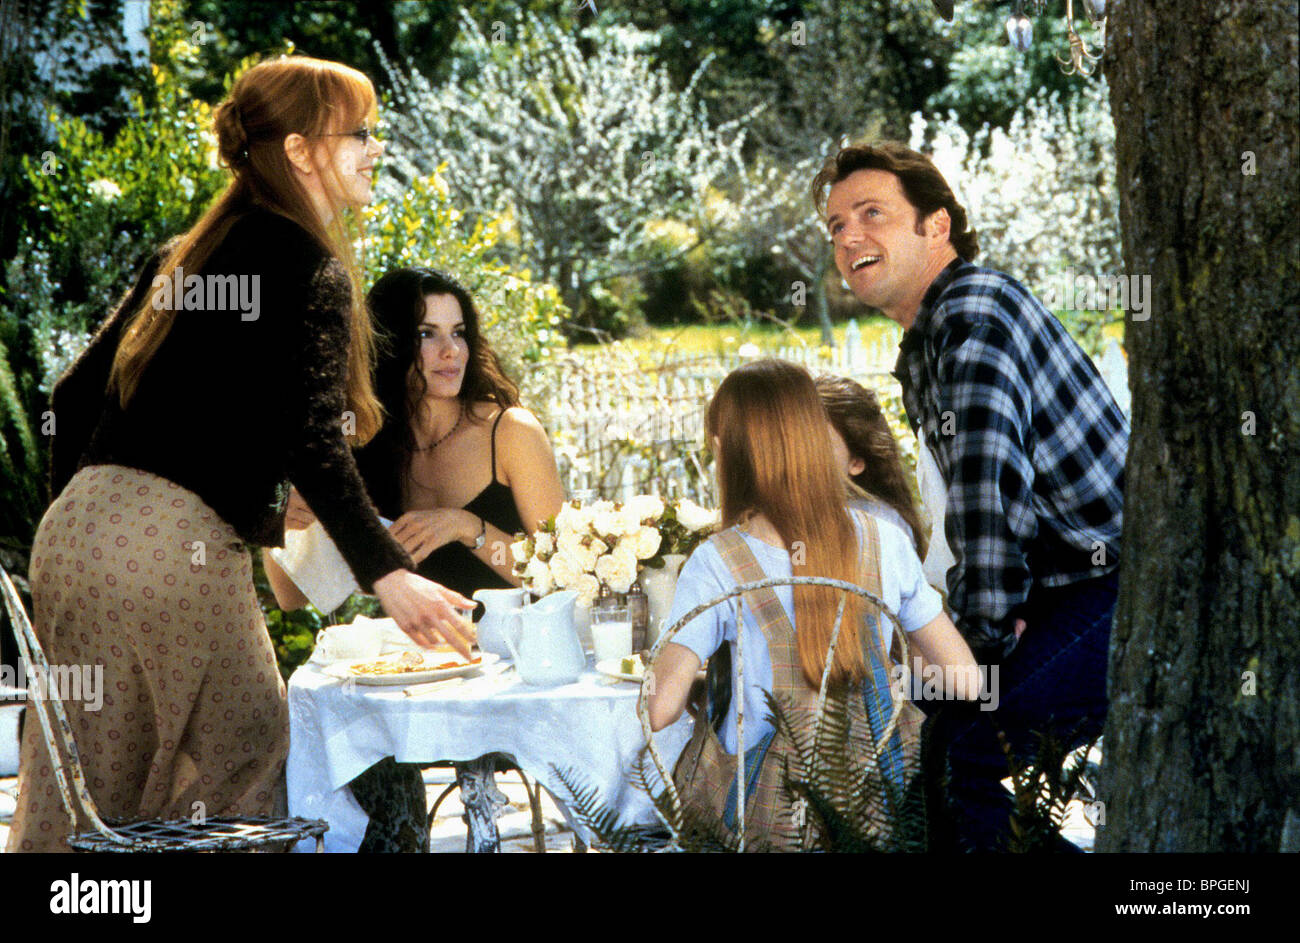 NICOLE KIDMAN, SANDRA BULLOCK, AIDAN QUINN, PRACTICAL MAGIC, 1998 - Stock Image